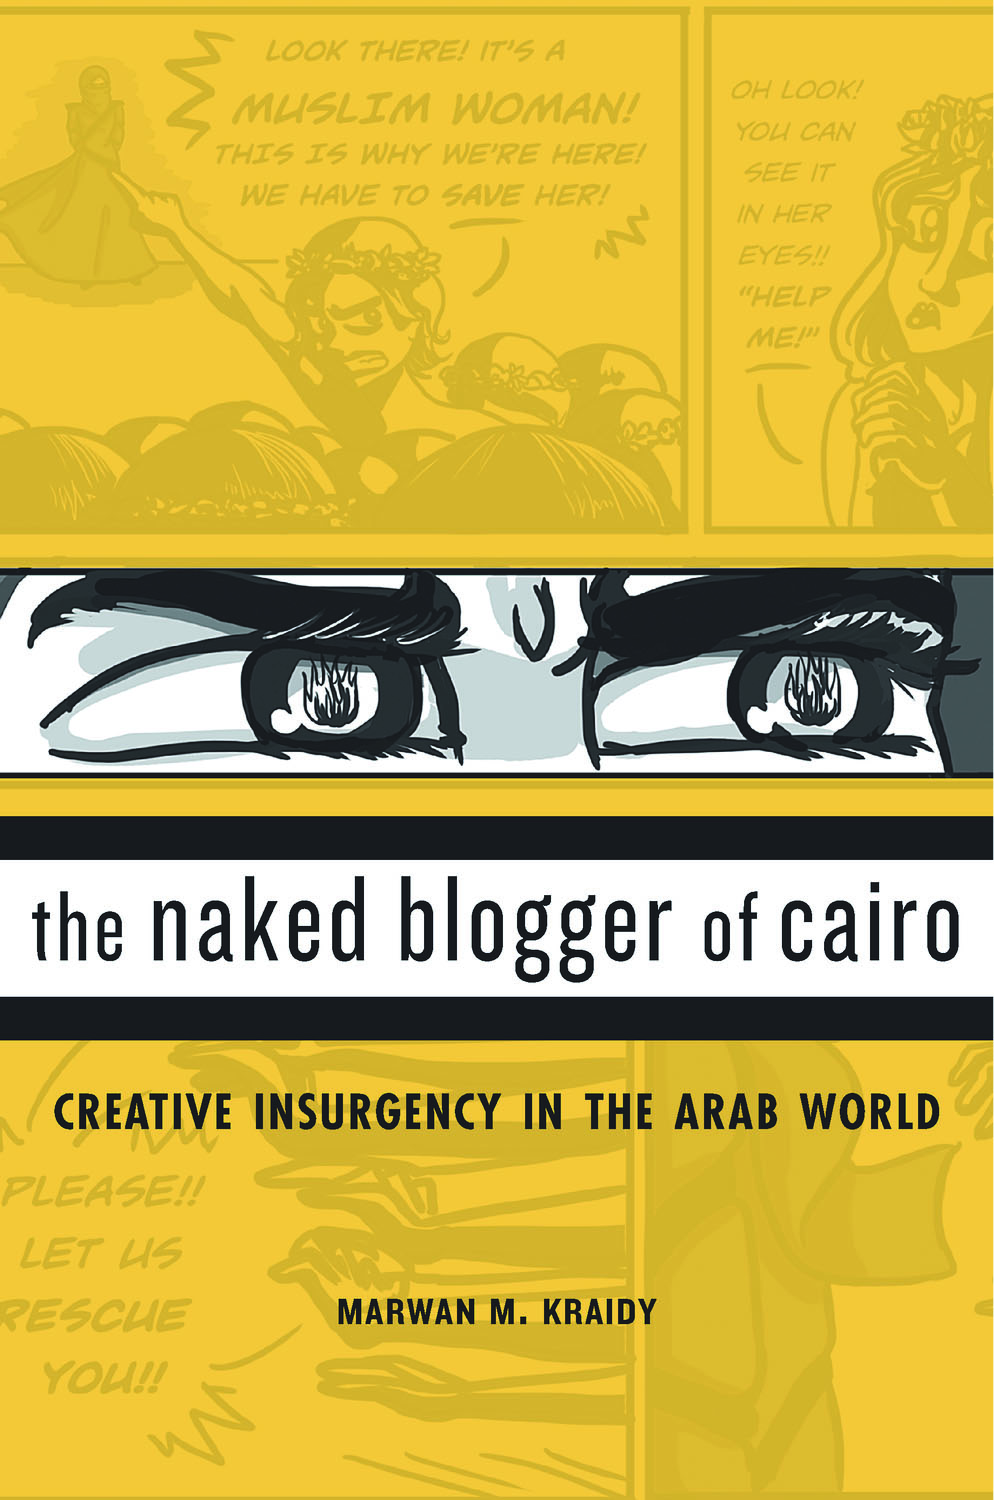 Book Review: The Naked Blogger of Cairo